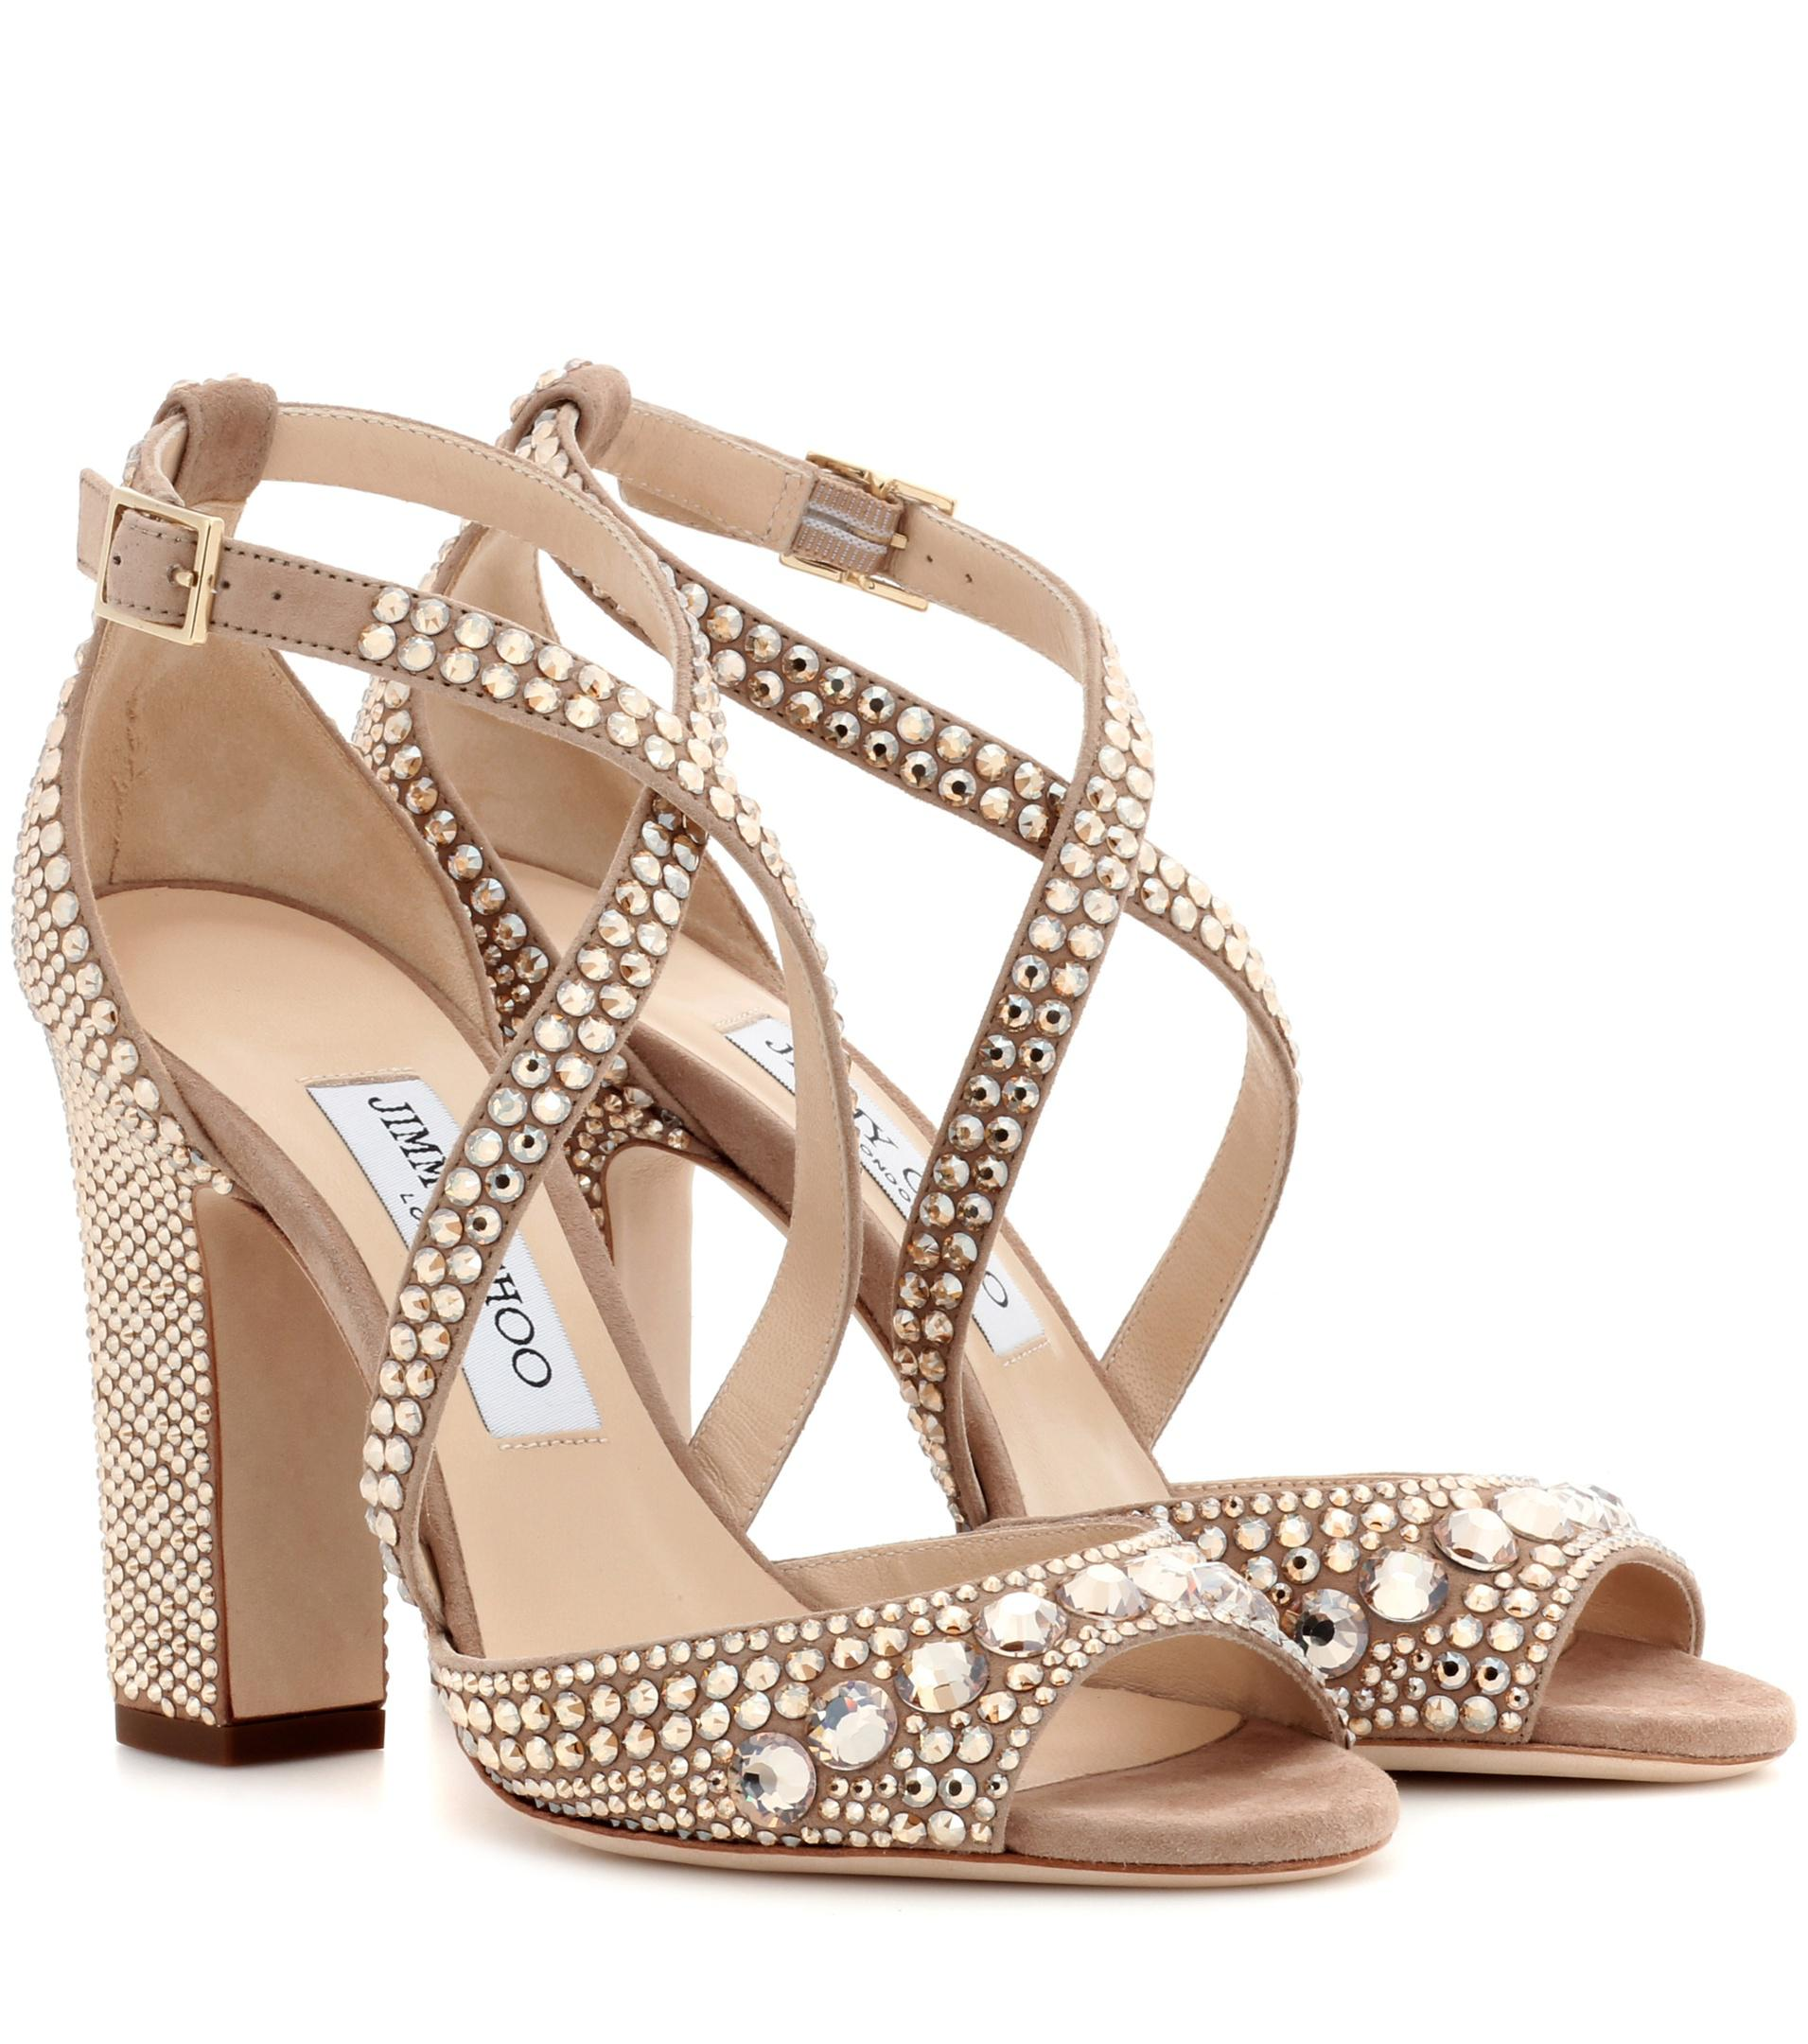 Jimmy choo Carrie 100 glitter sandals pVOUV